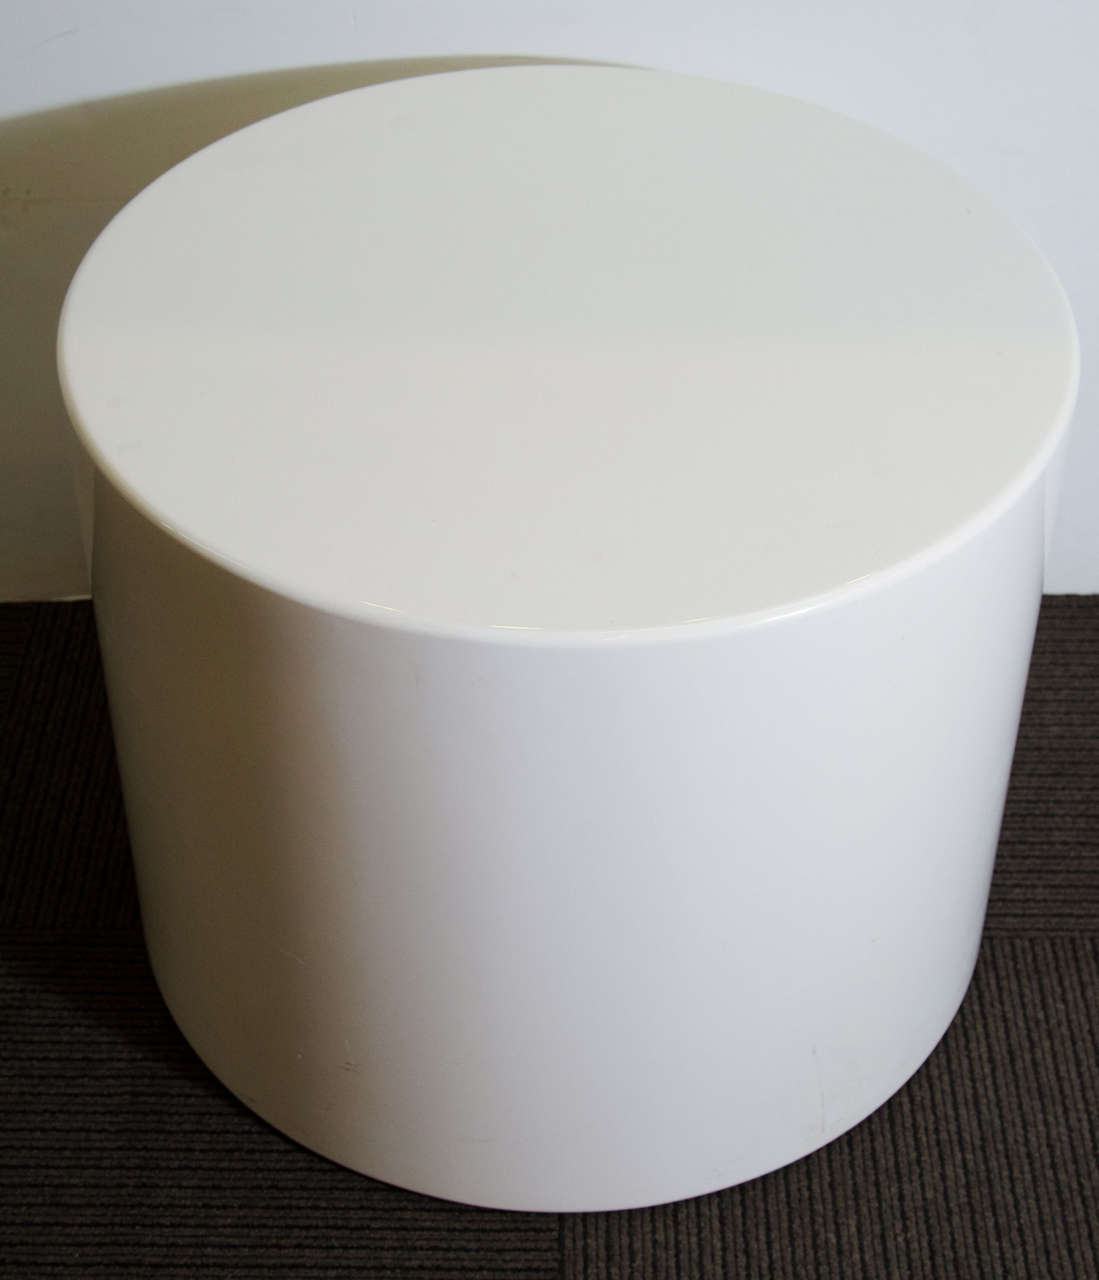 Incroyable A Vintage Pair Of Cylindrical Drum End Or Side Tables Made Of White  Lacquered Wood.